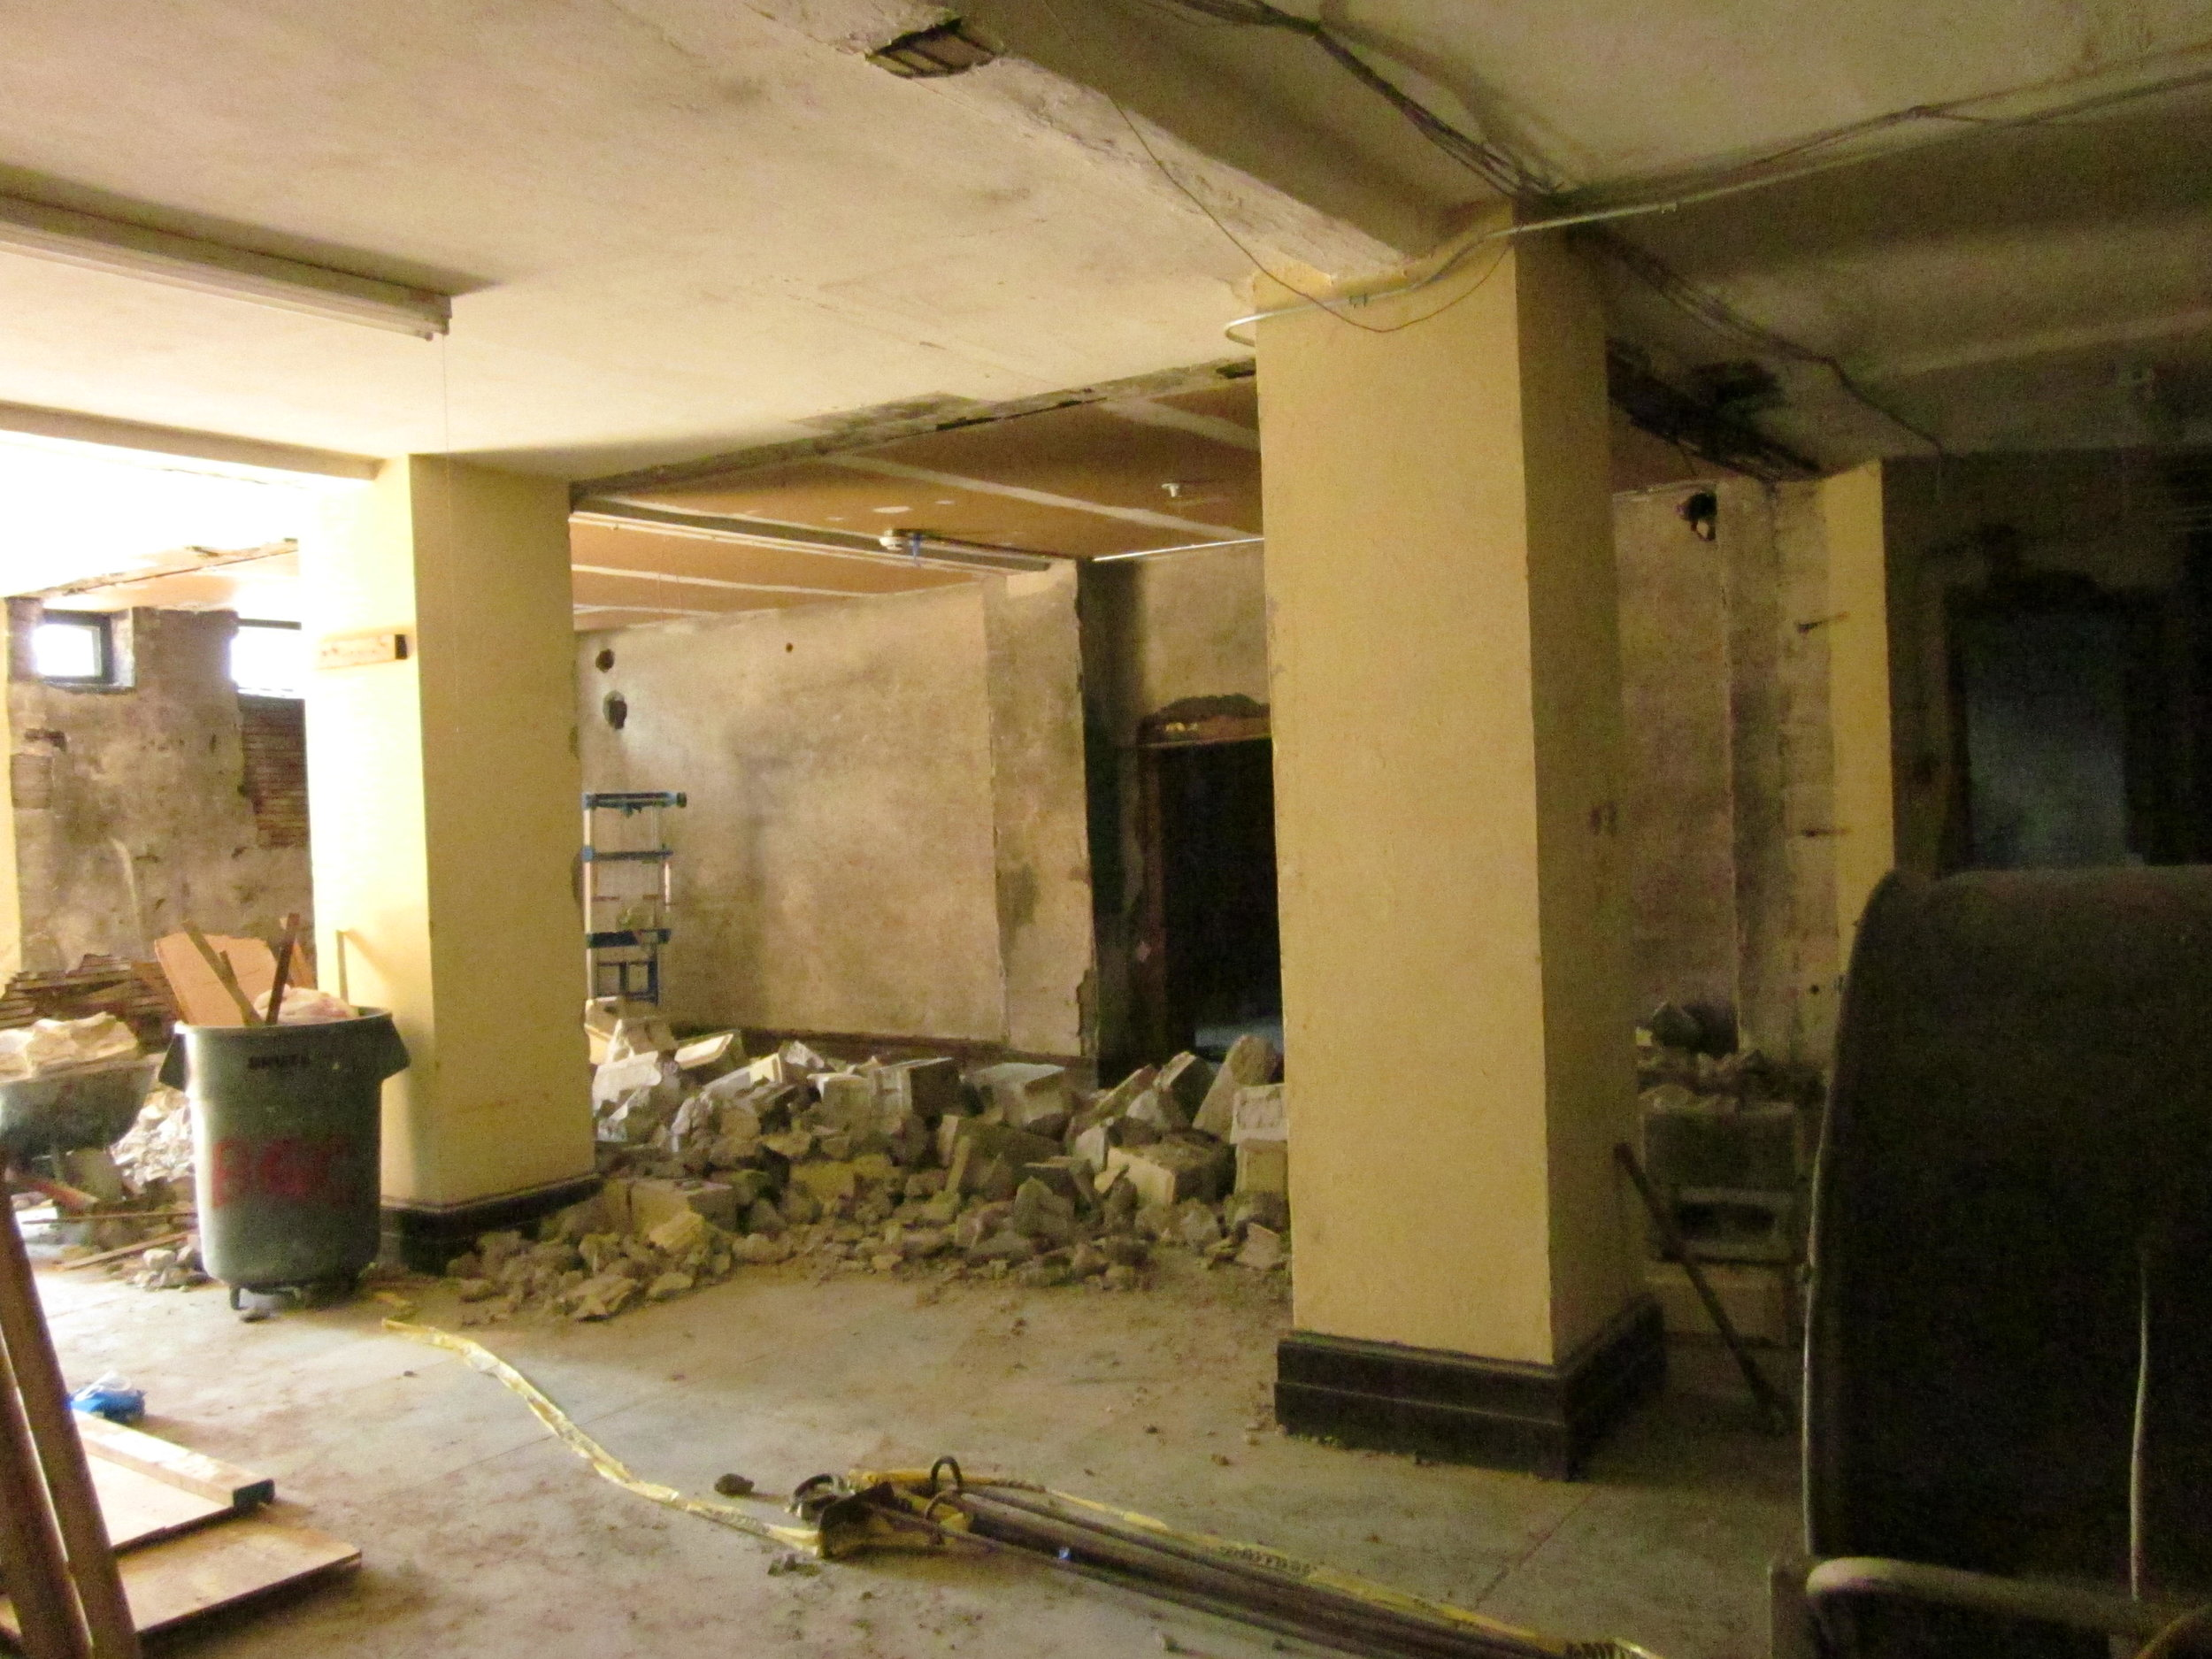 Demo in lower level to expand area